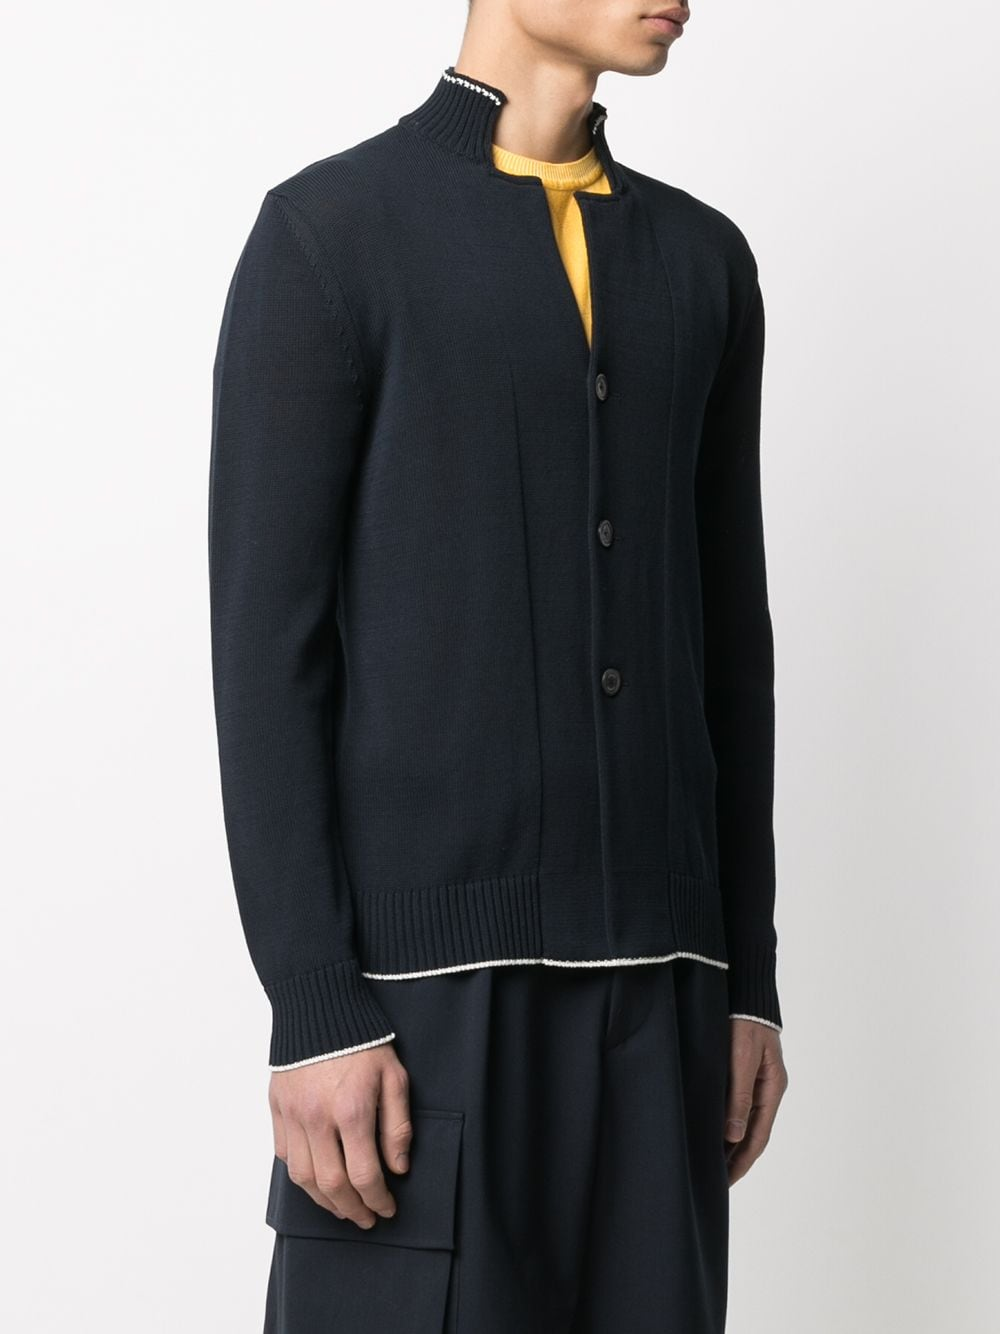 Navy blue cotton stand-up collar cardigan ELEVENTY |  | C76MAGC30-MAG0A00111